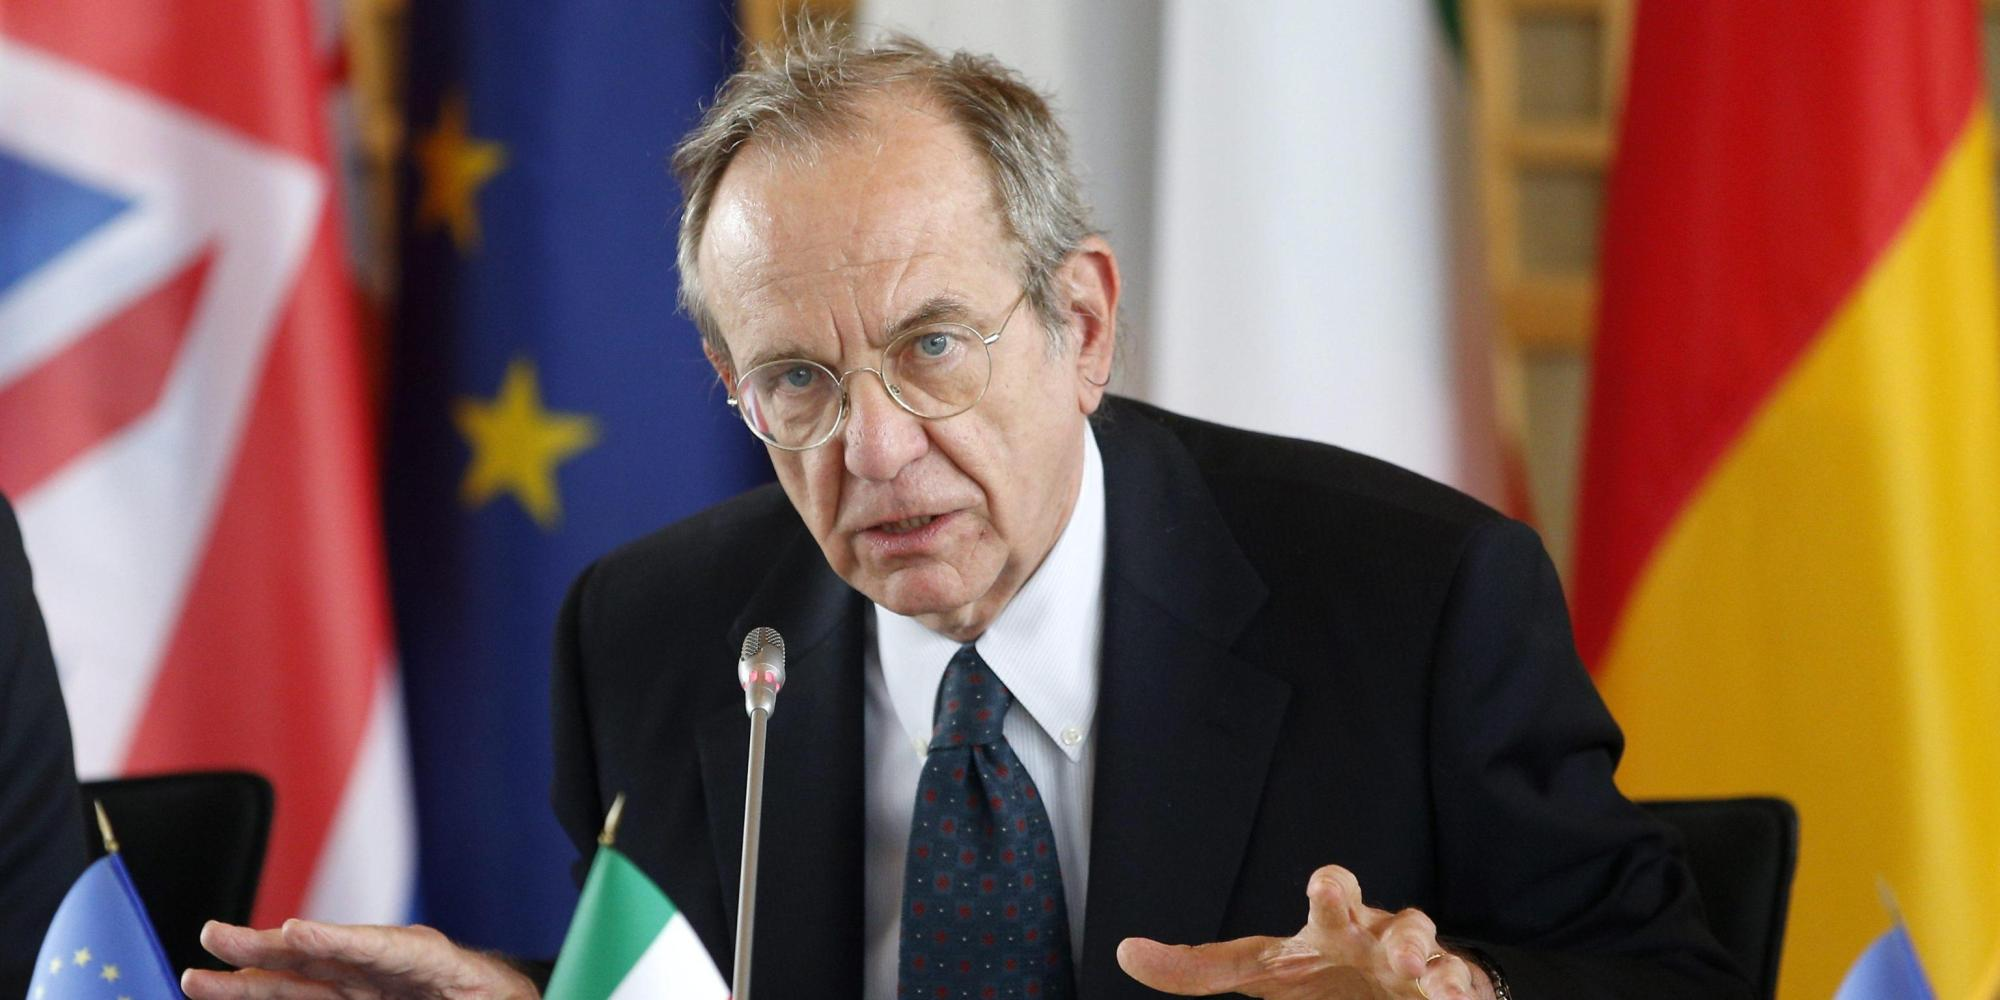 Padoan all'Ue: